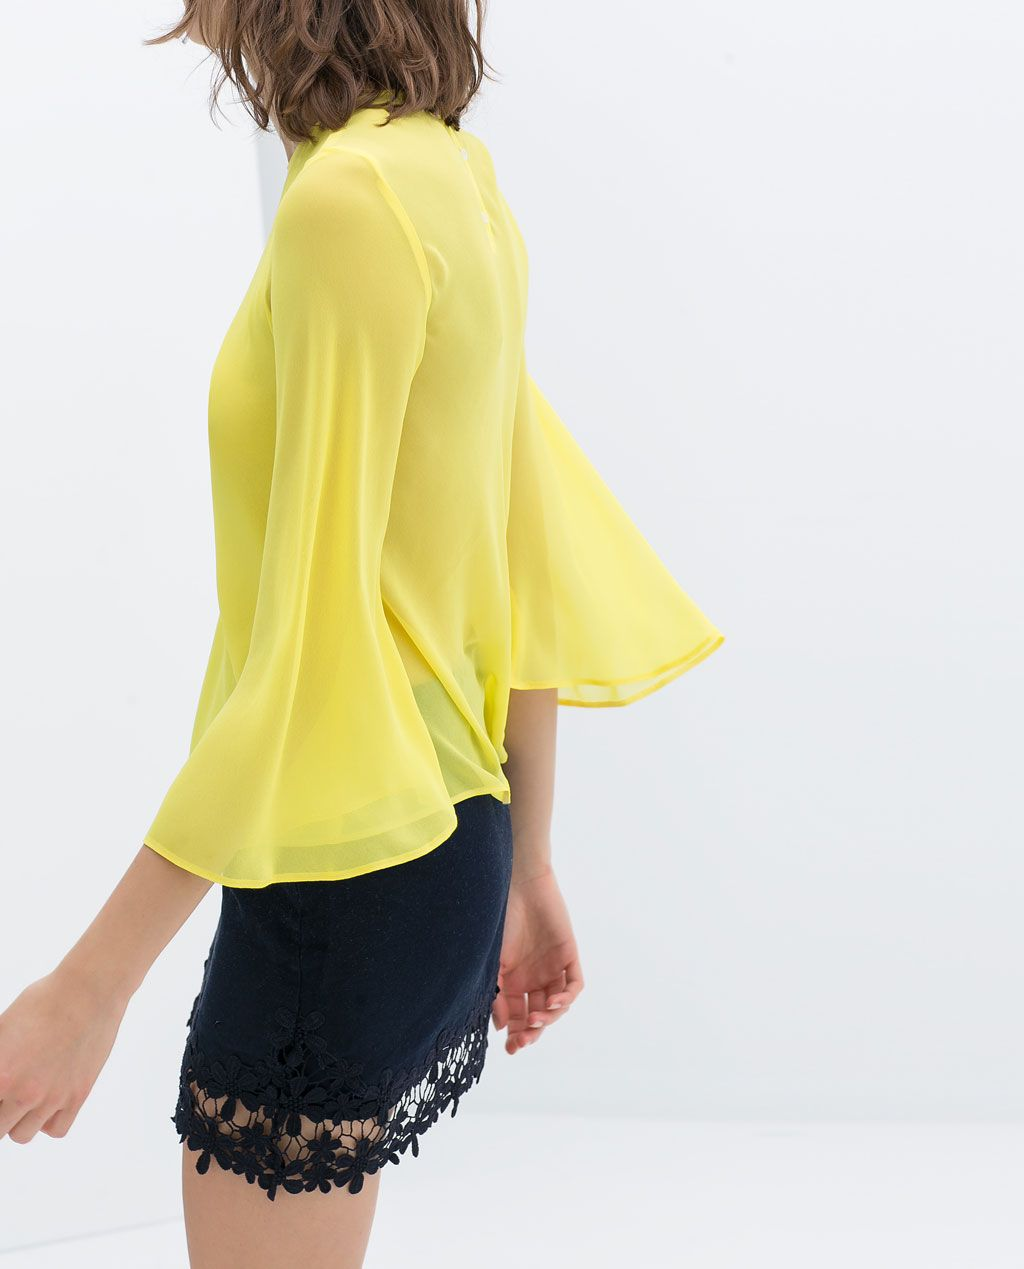 ZARA - NEW THIS WEEK - TOP WITH FULL SLEEVE